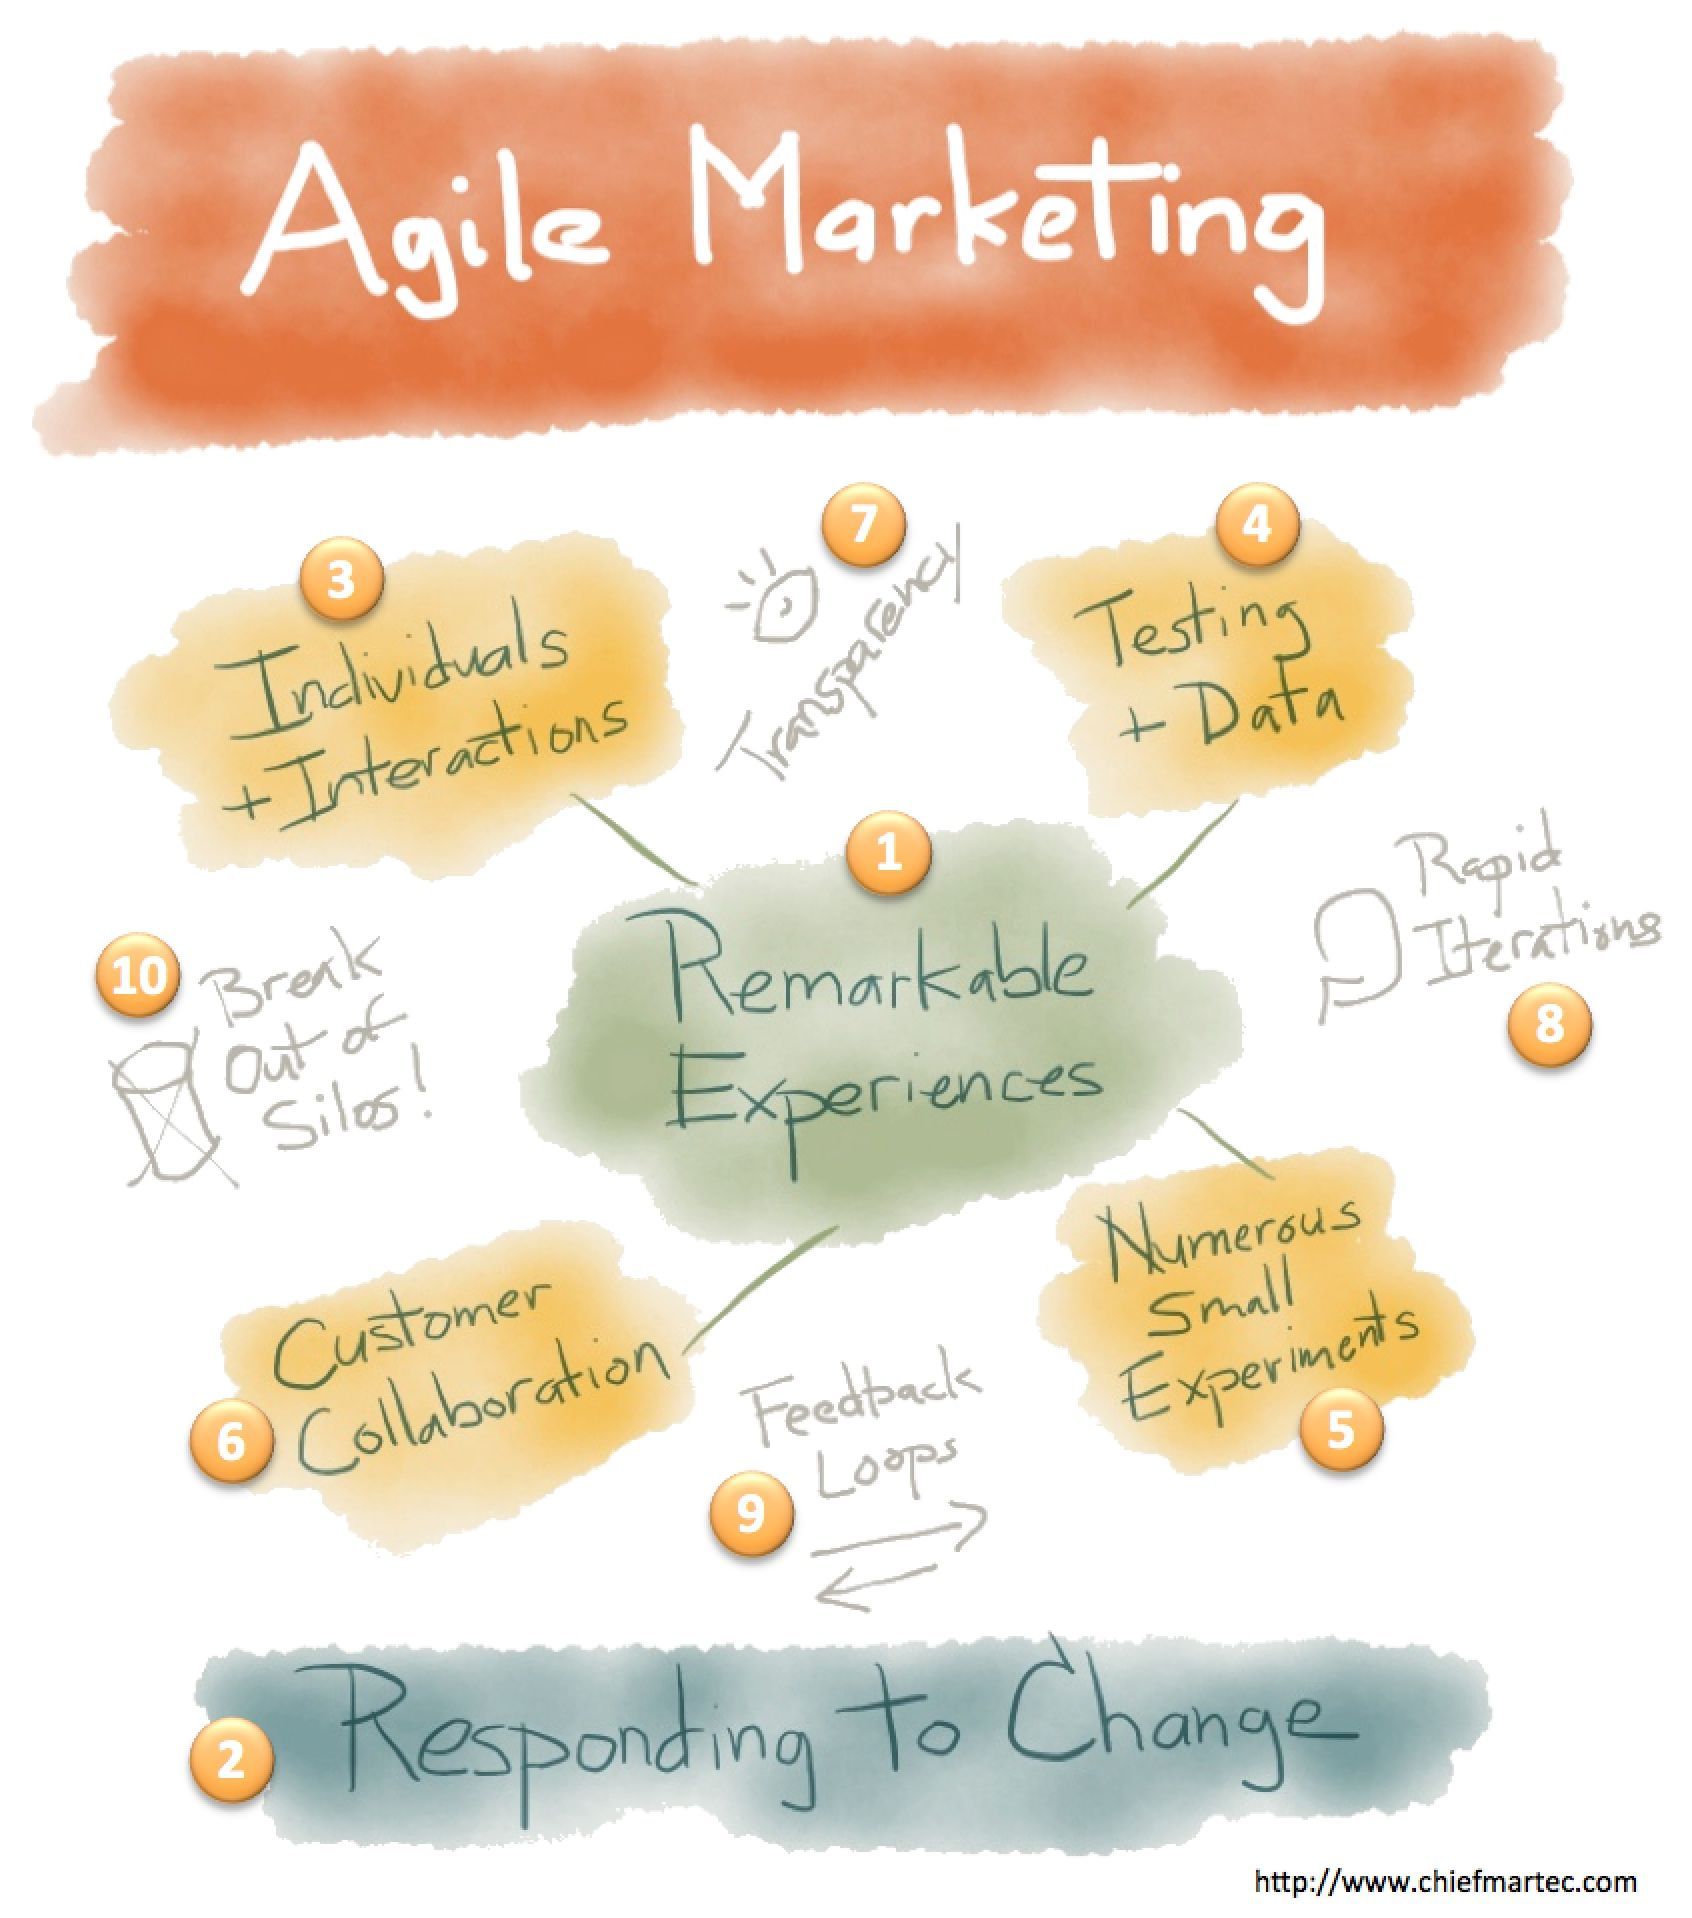 10 Key Principles Of Agile Marketing Management With Images